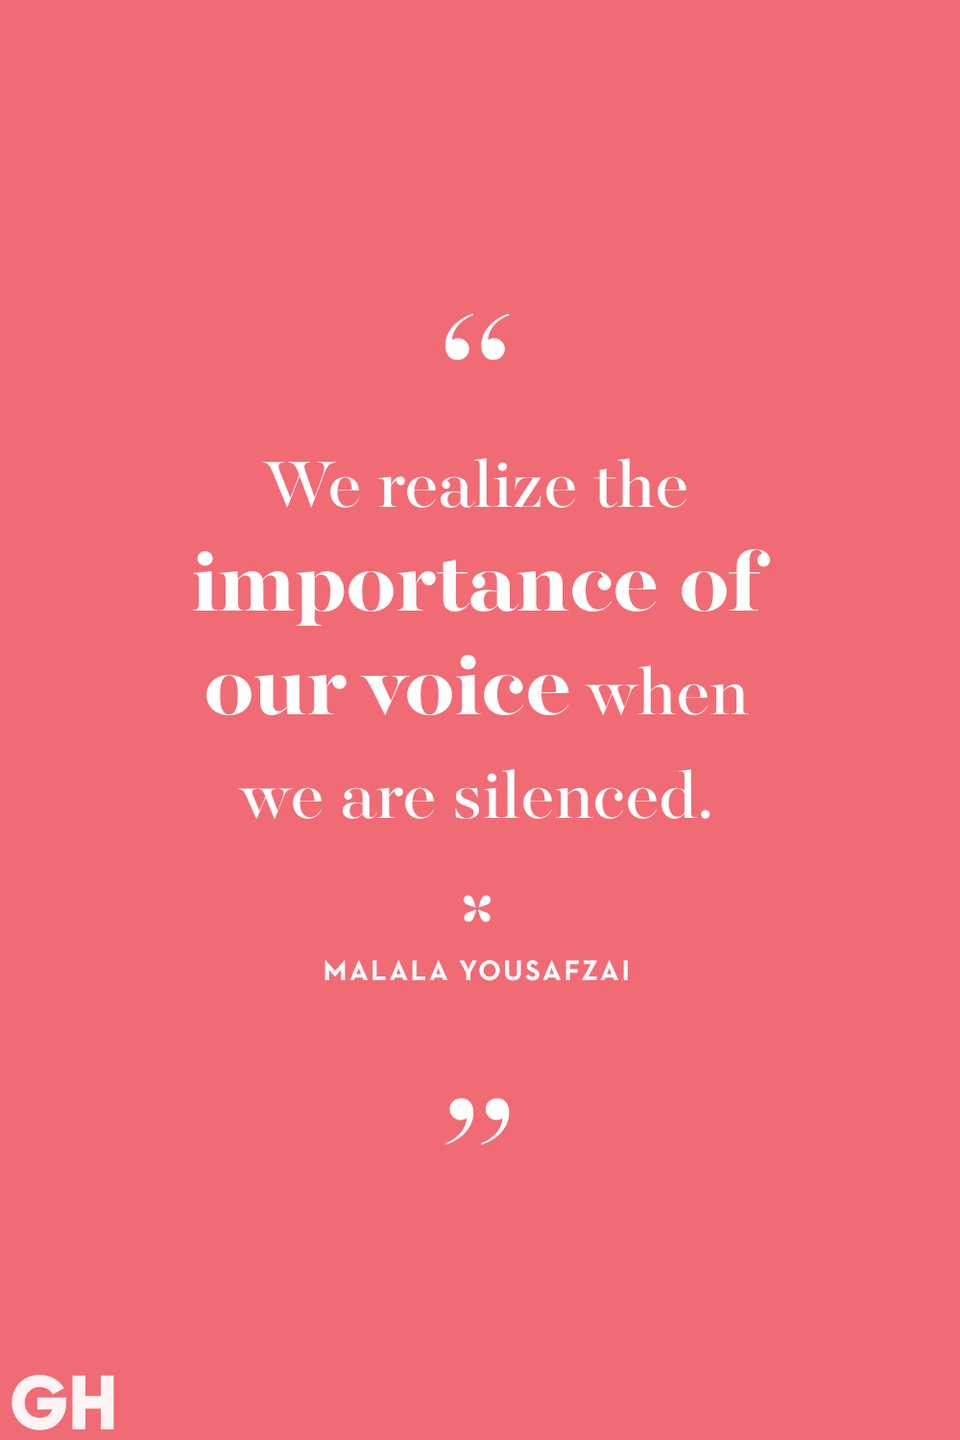 <p>We realize the importance of our voice when we are silenced.</p>